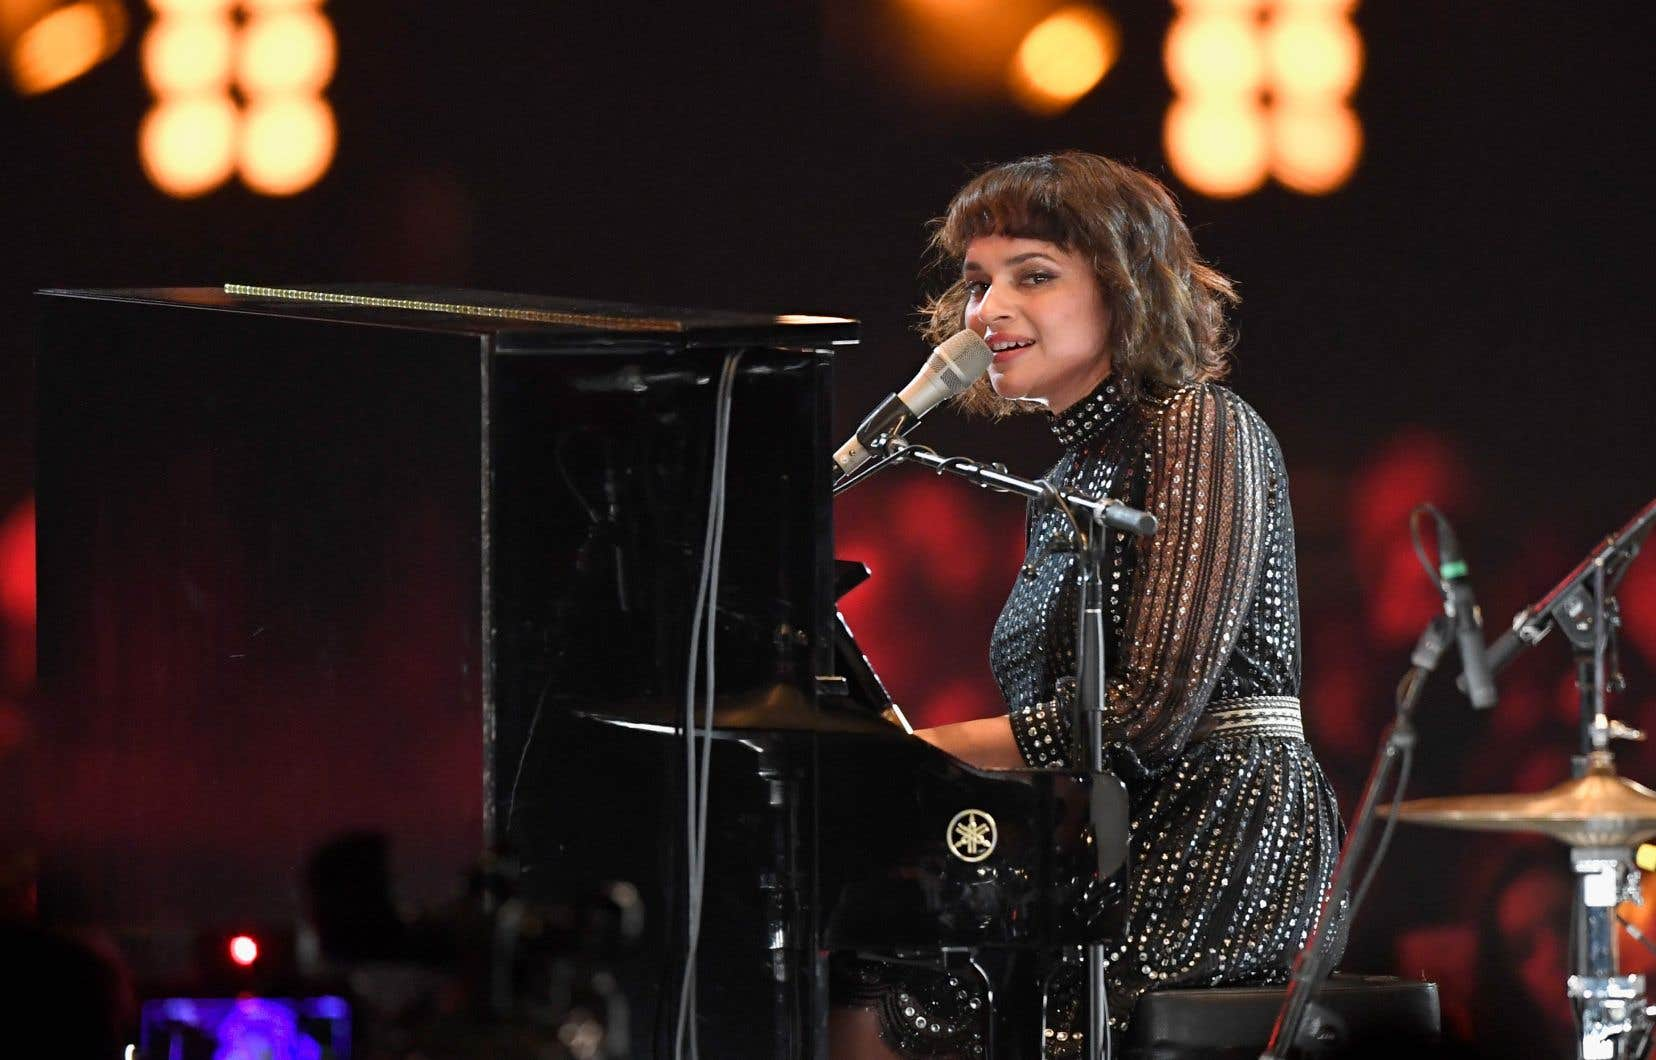 La chanteuse Norah Jones